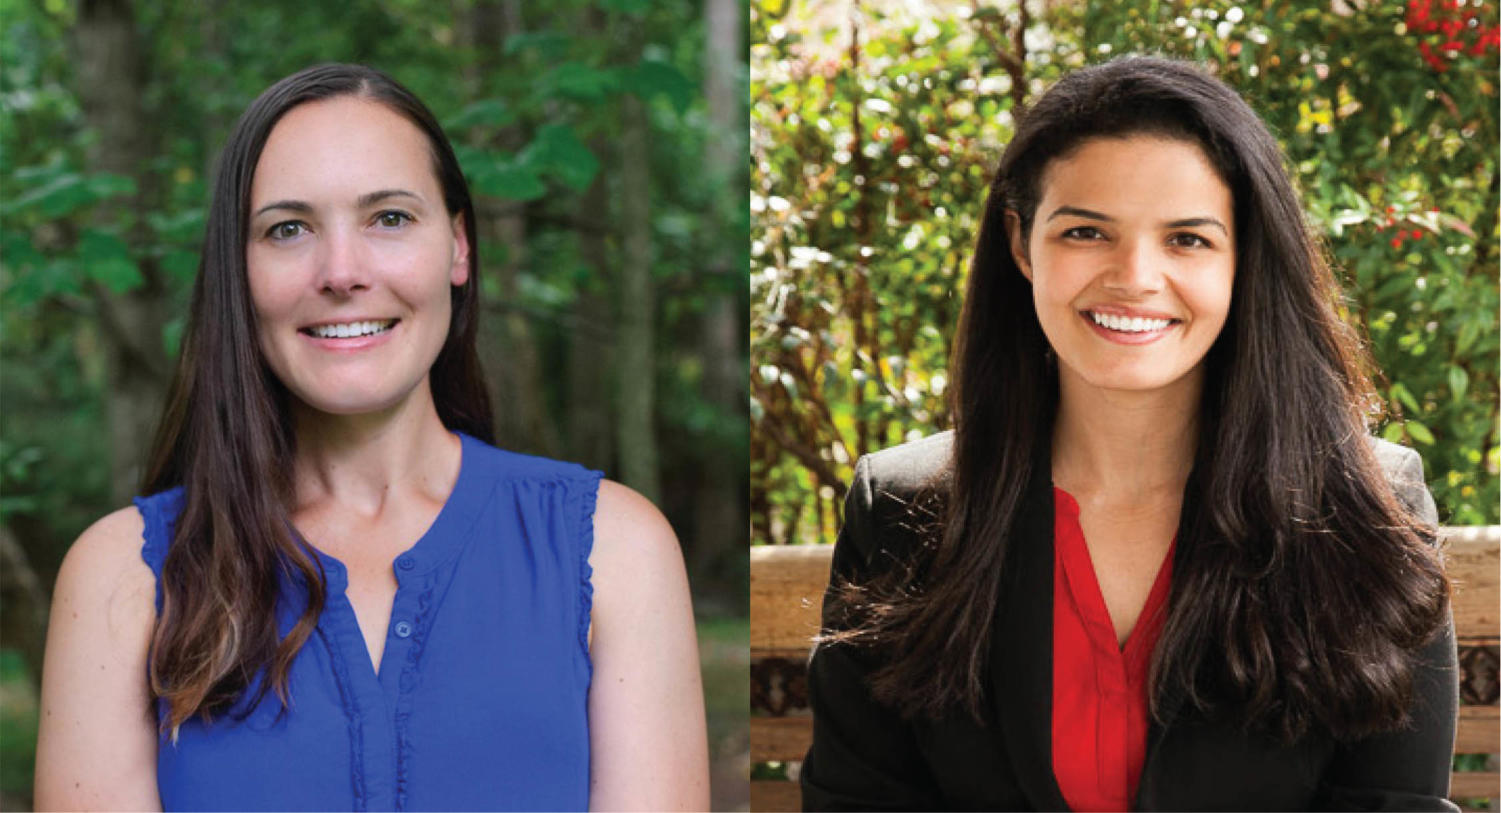 Mary McIntyre and Katrina Callsen are both running for the Rio District seat on the School Board.